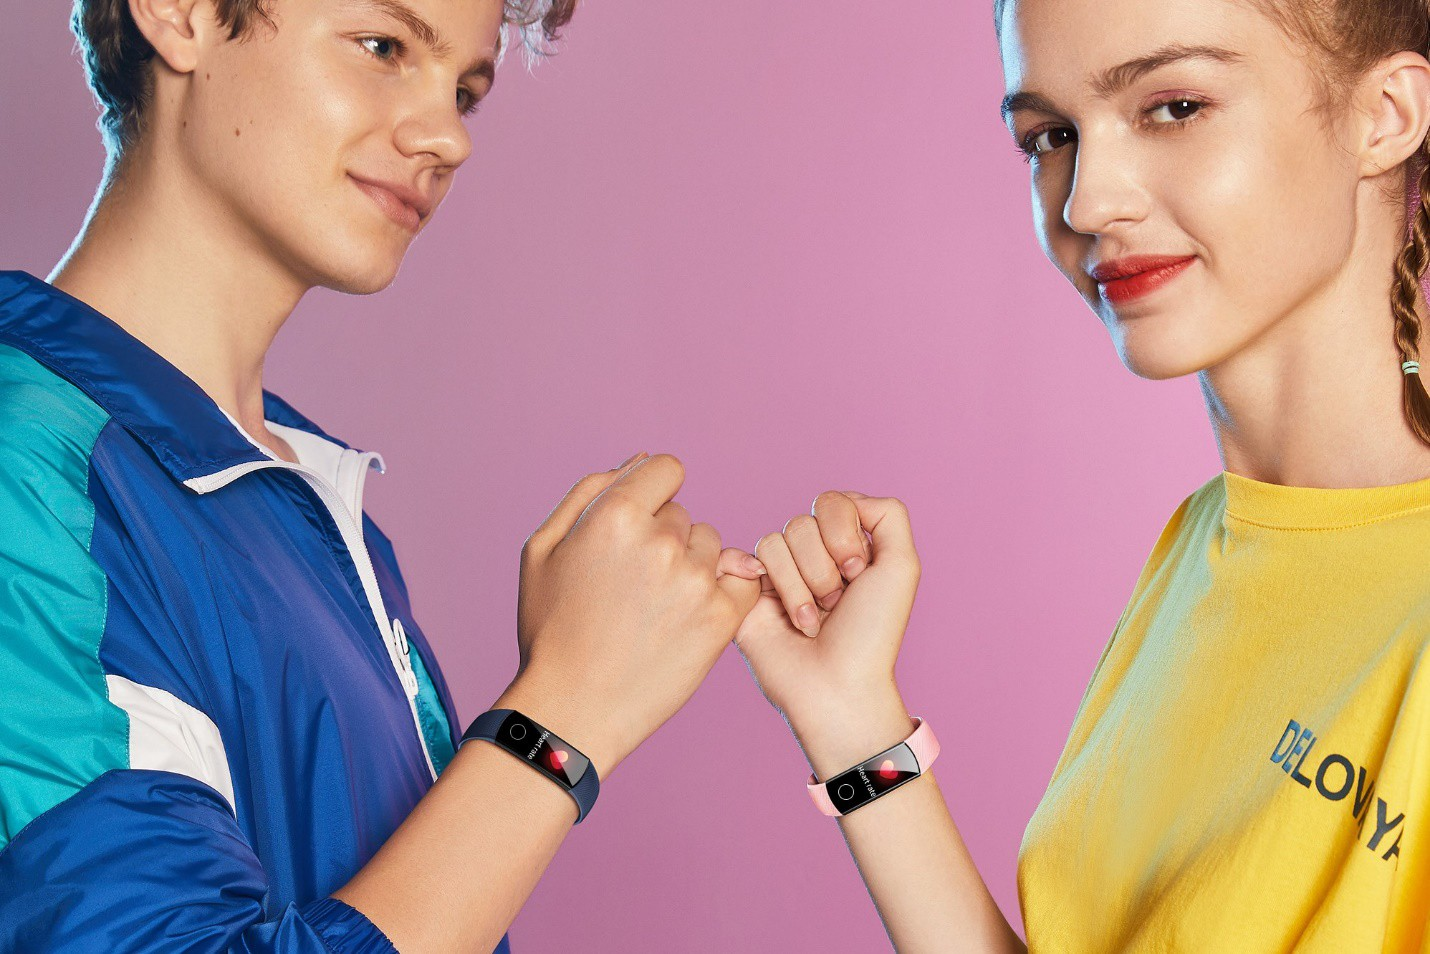 huawei honor band 5 - boy & girl